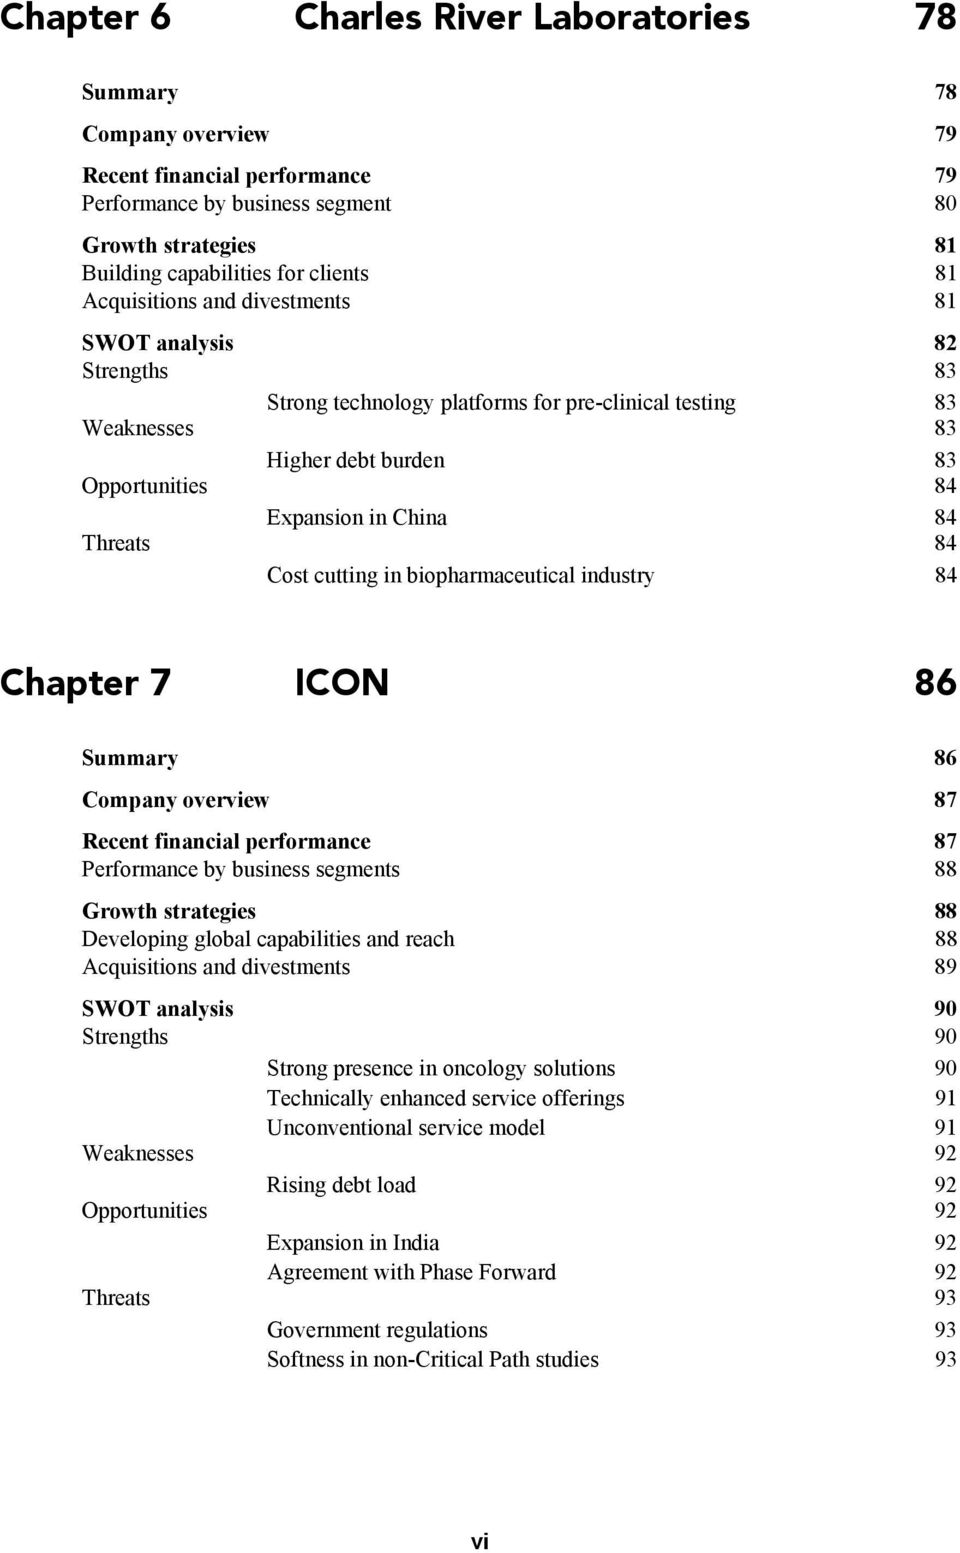 biopharmaceutical industry 84 Chapter 7 ICON 86 Summary 86 Company overview 87 Recent financial performance 87 Performance by business segments 88 Growth strategies 88 Developing global capabilities